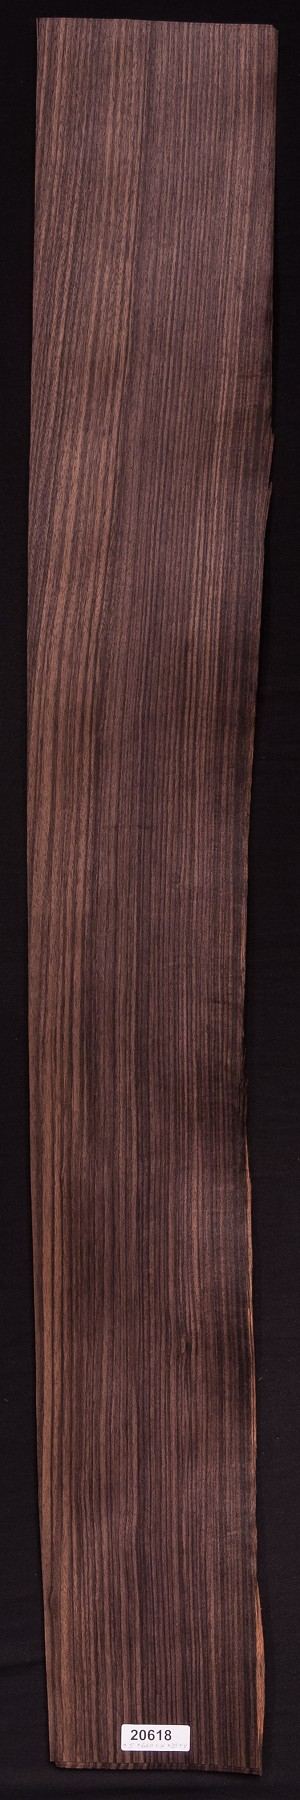 AAA Quartersawn Rosewood (E. Indian) Veneer Sheet